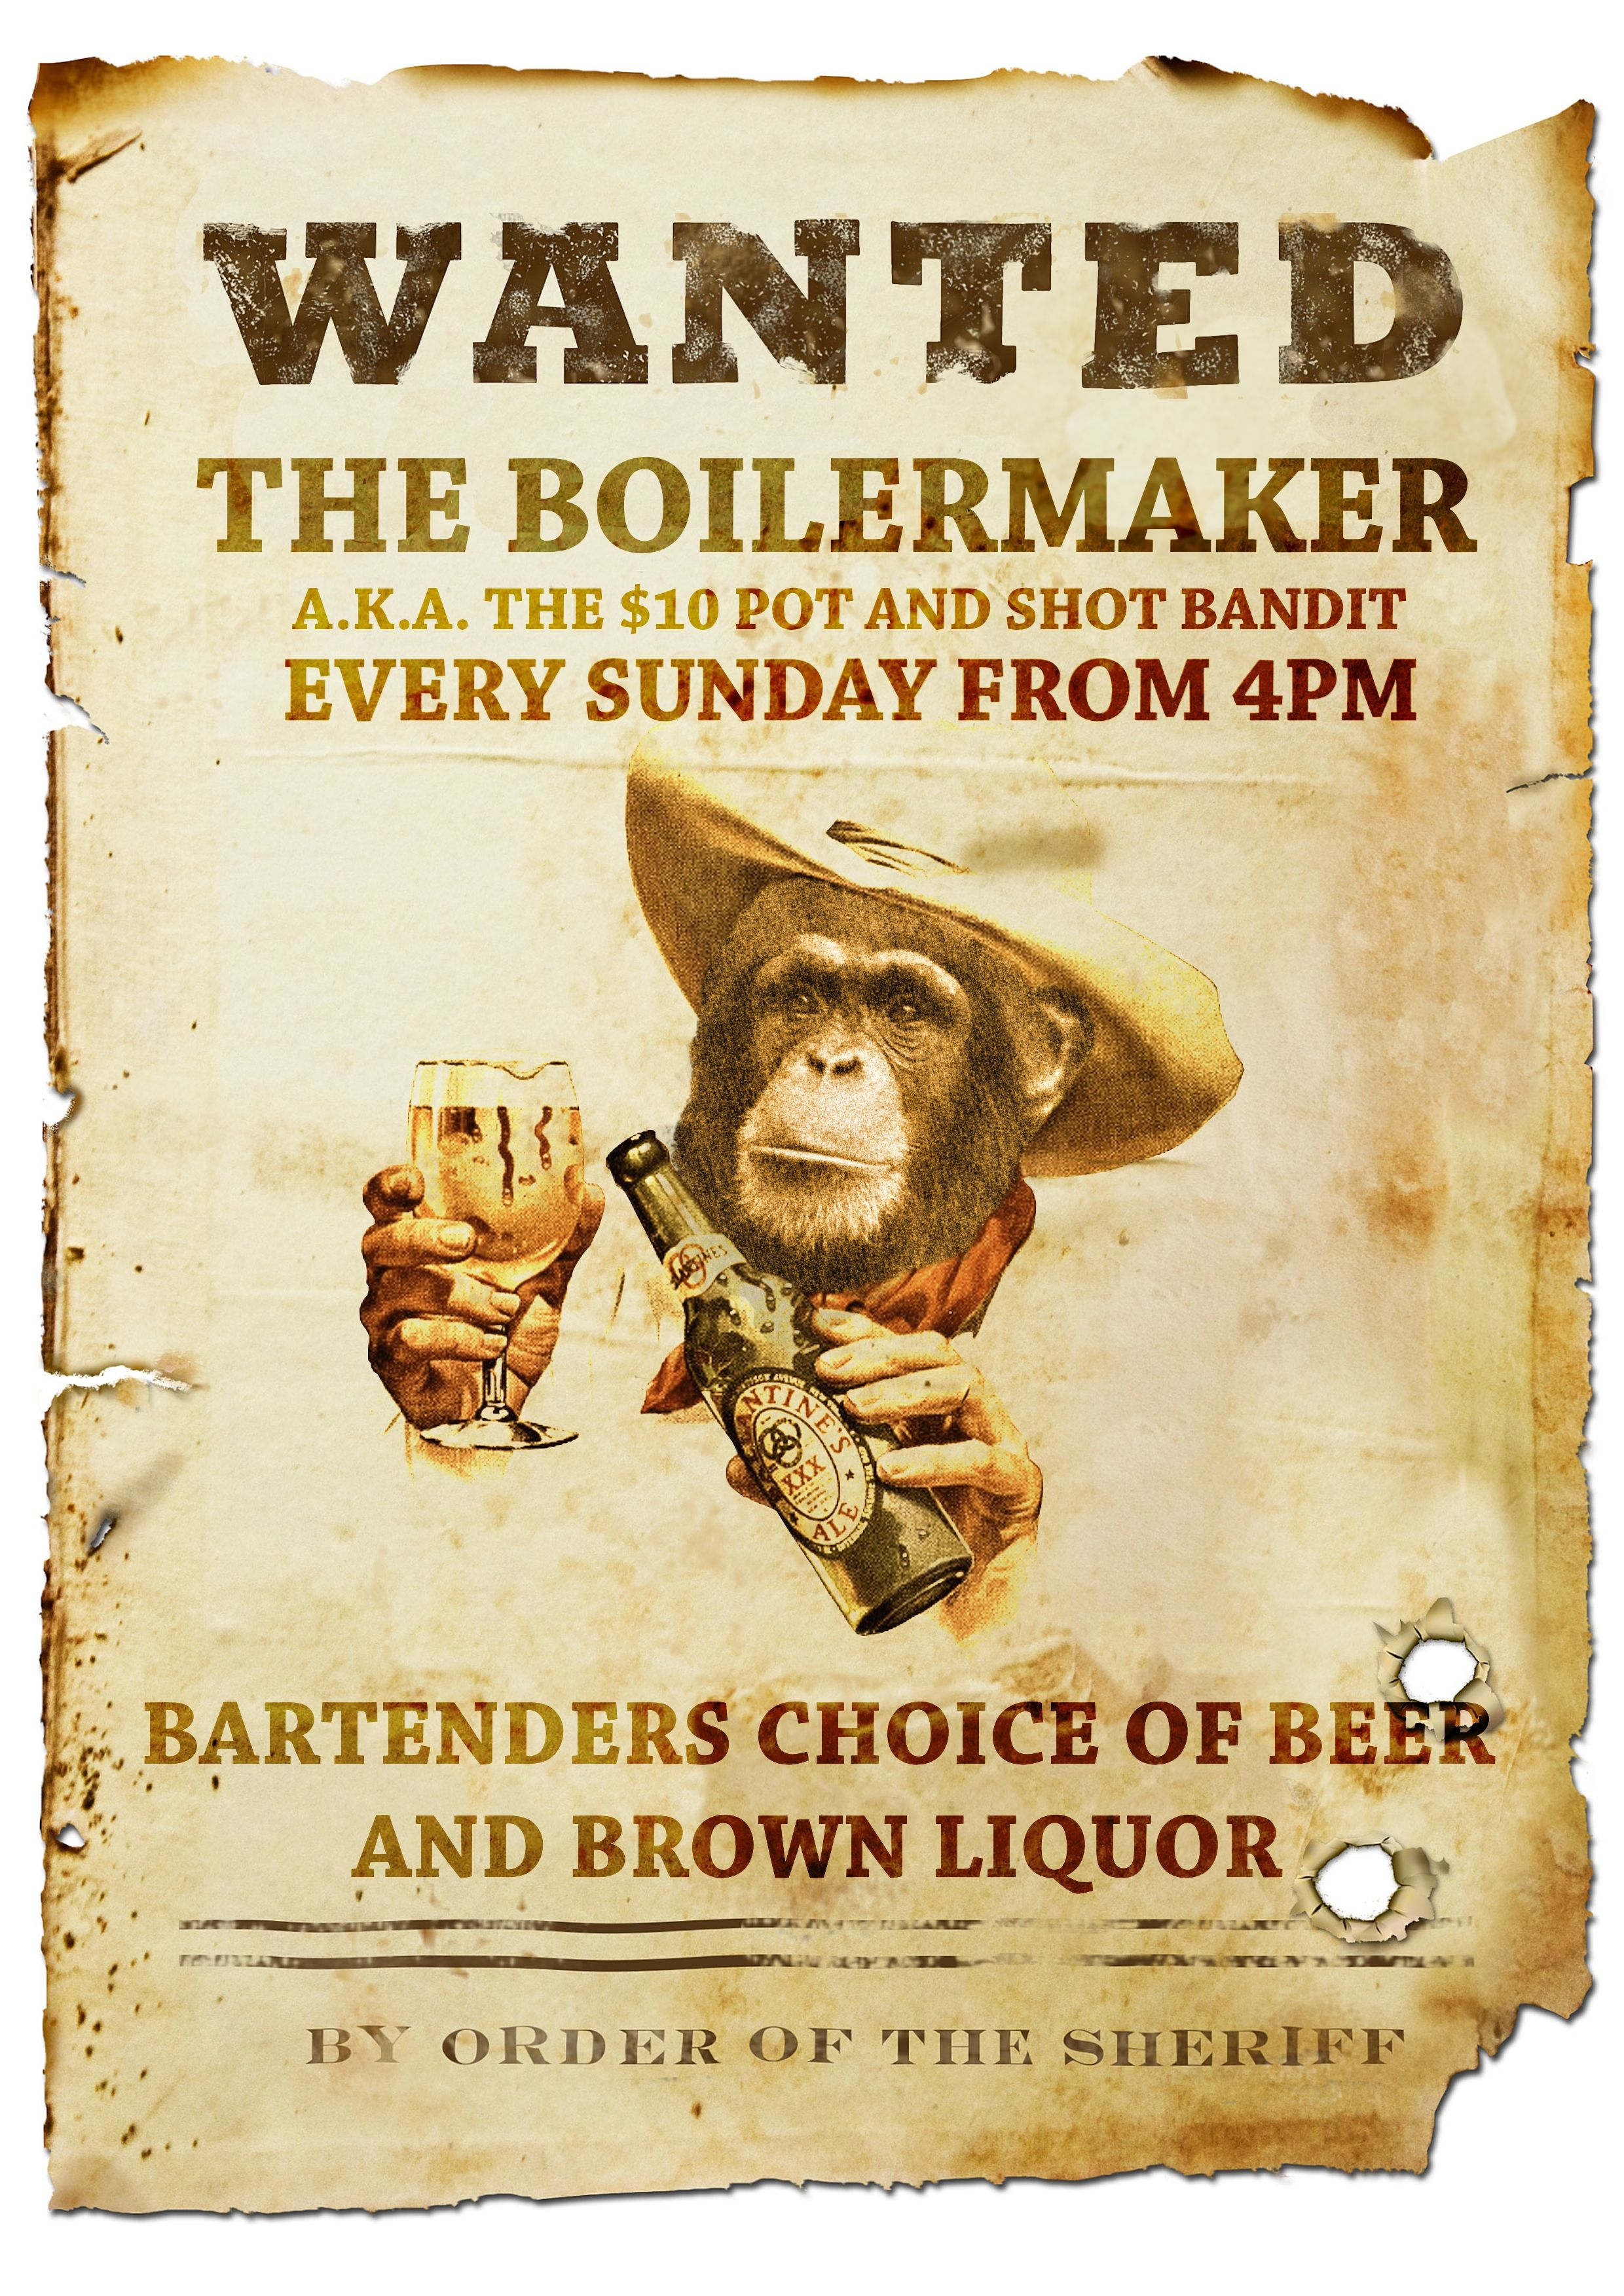 Sunday Drinks Special The Boilermaker Designed For The Brunswick Mess Hall Drink Specials Sunday Drink Specials Boilermaker